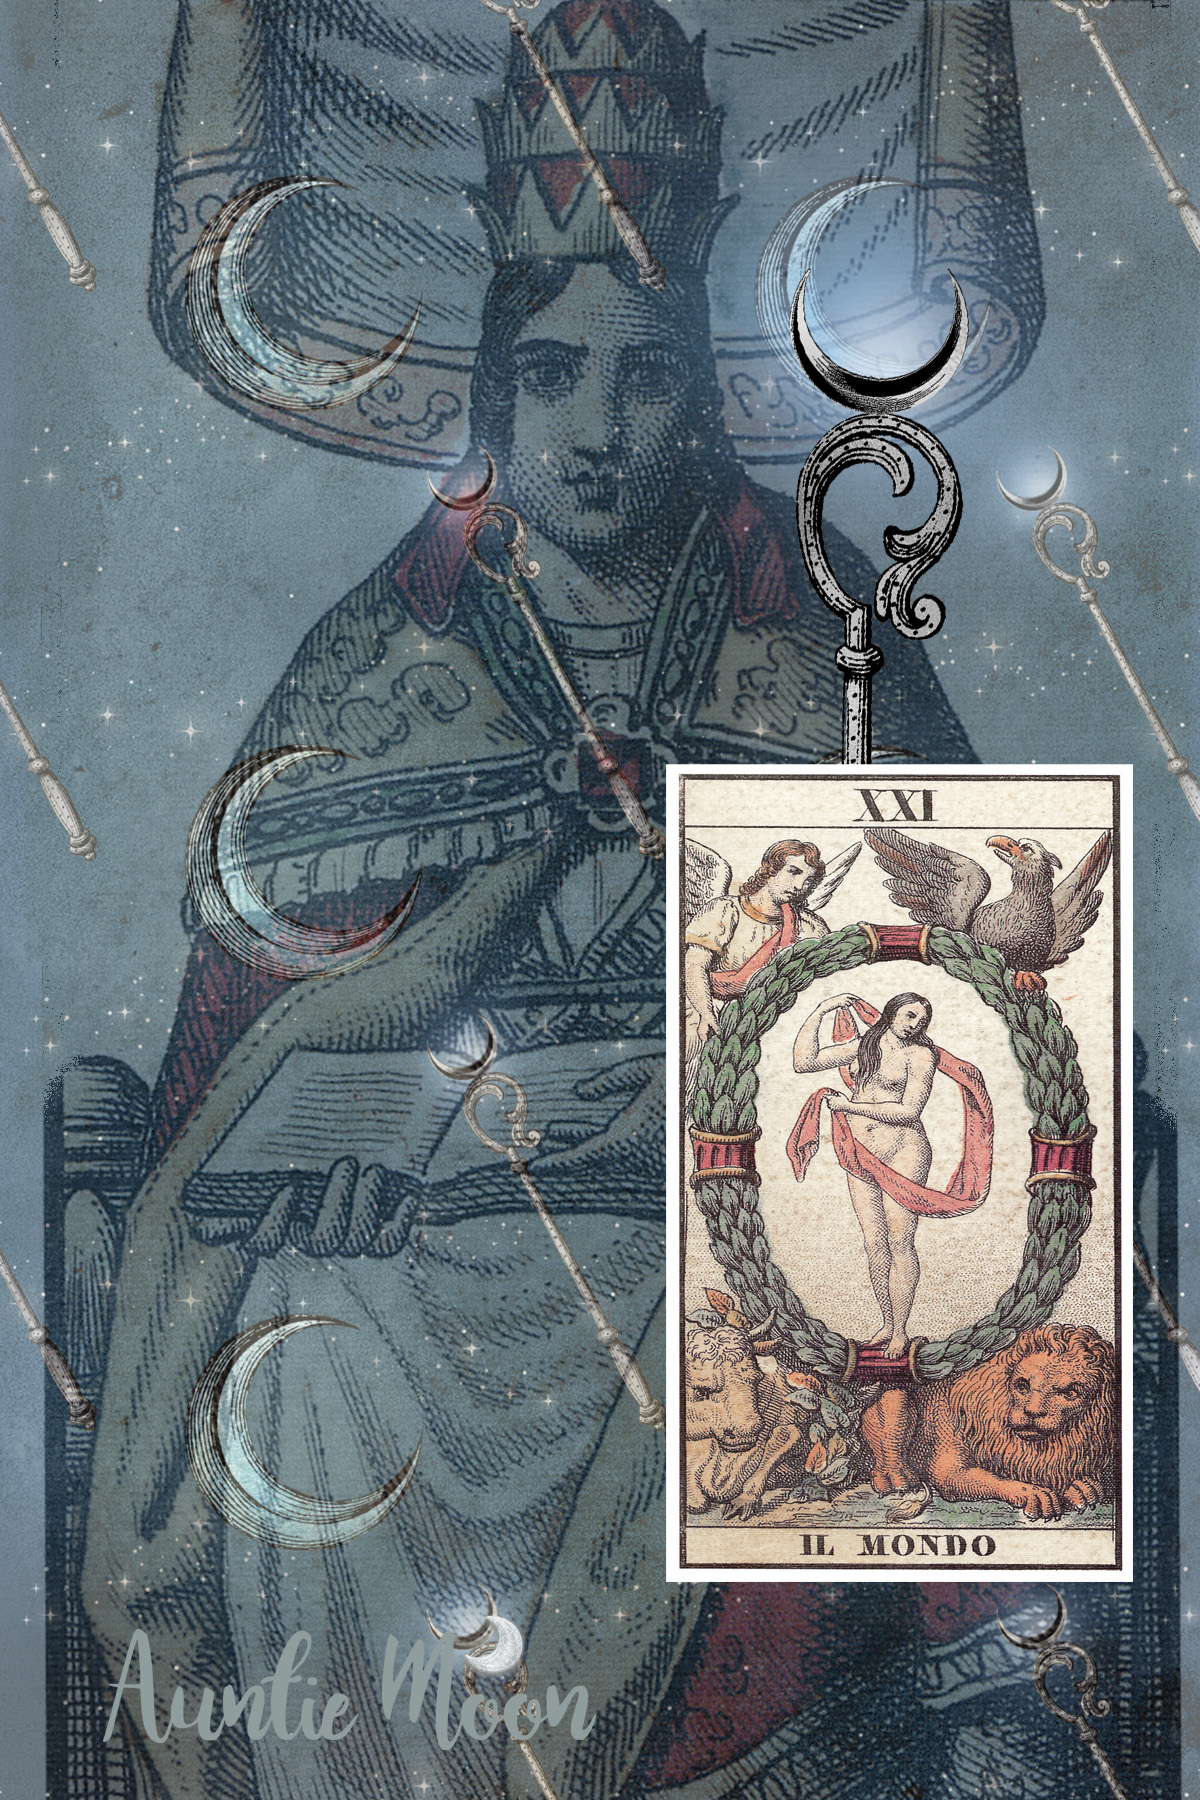 Tarot-Lunar: The World-Moon in Capricorn